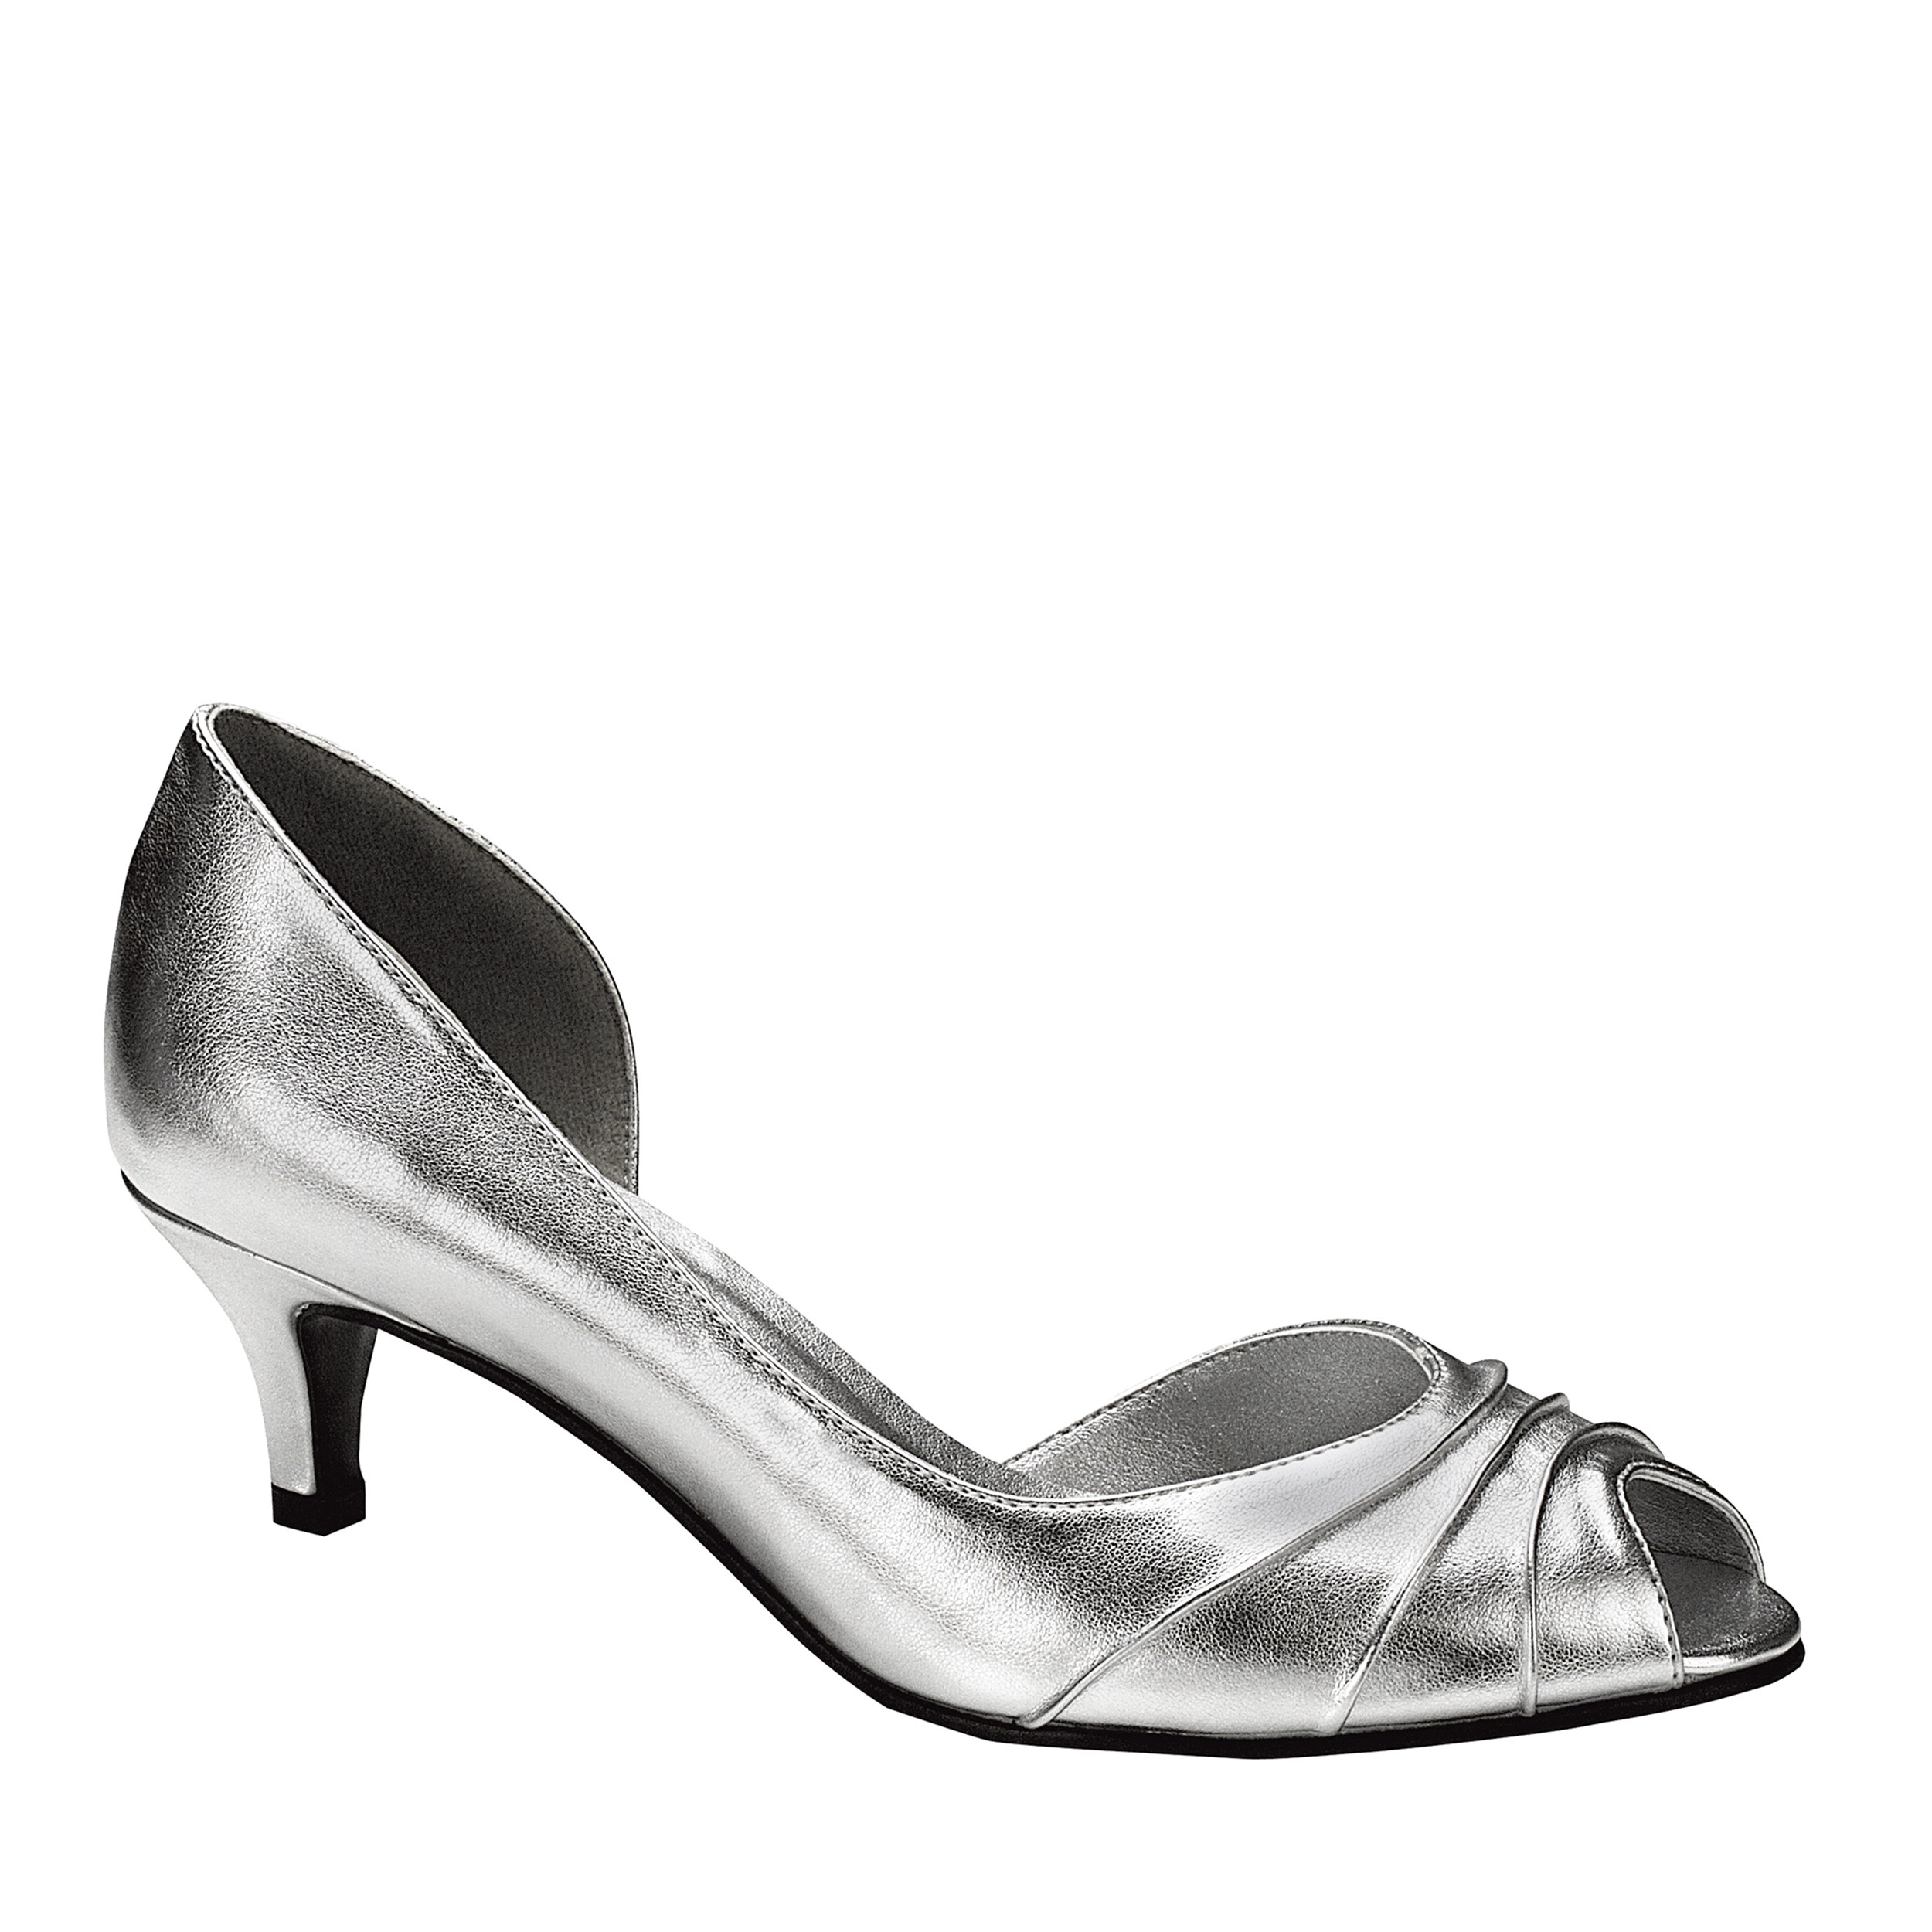 Touch Ups Womens Abby Pump,Silver,5.5 M by Benjamin Walk